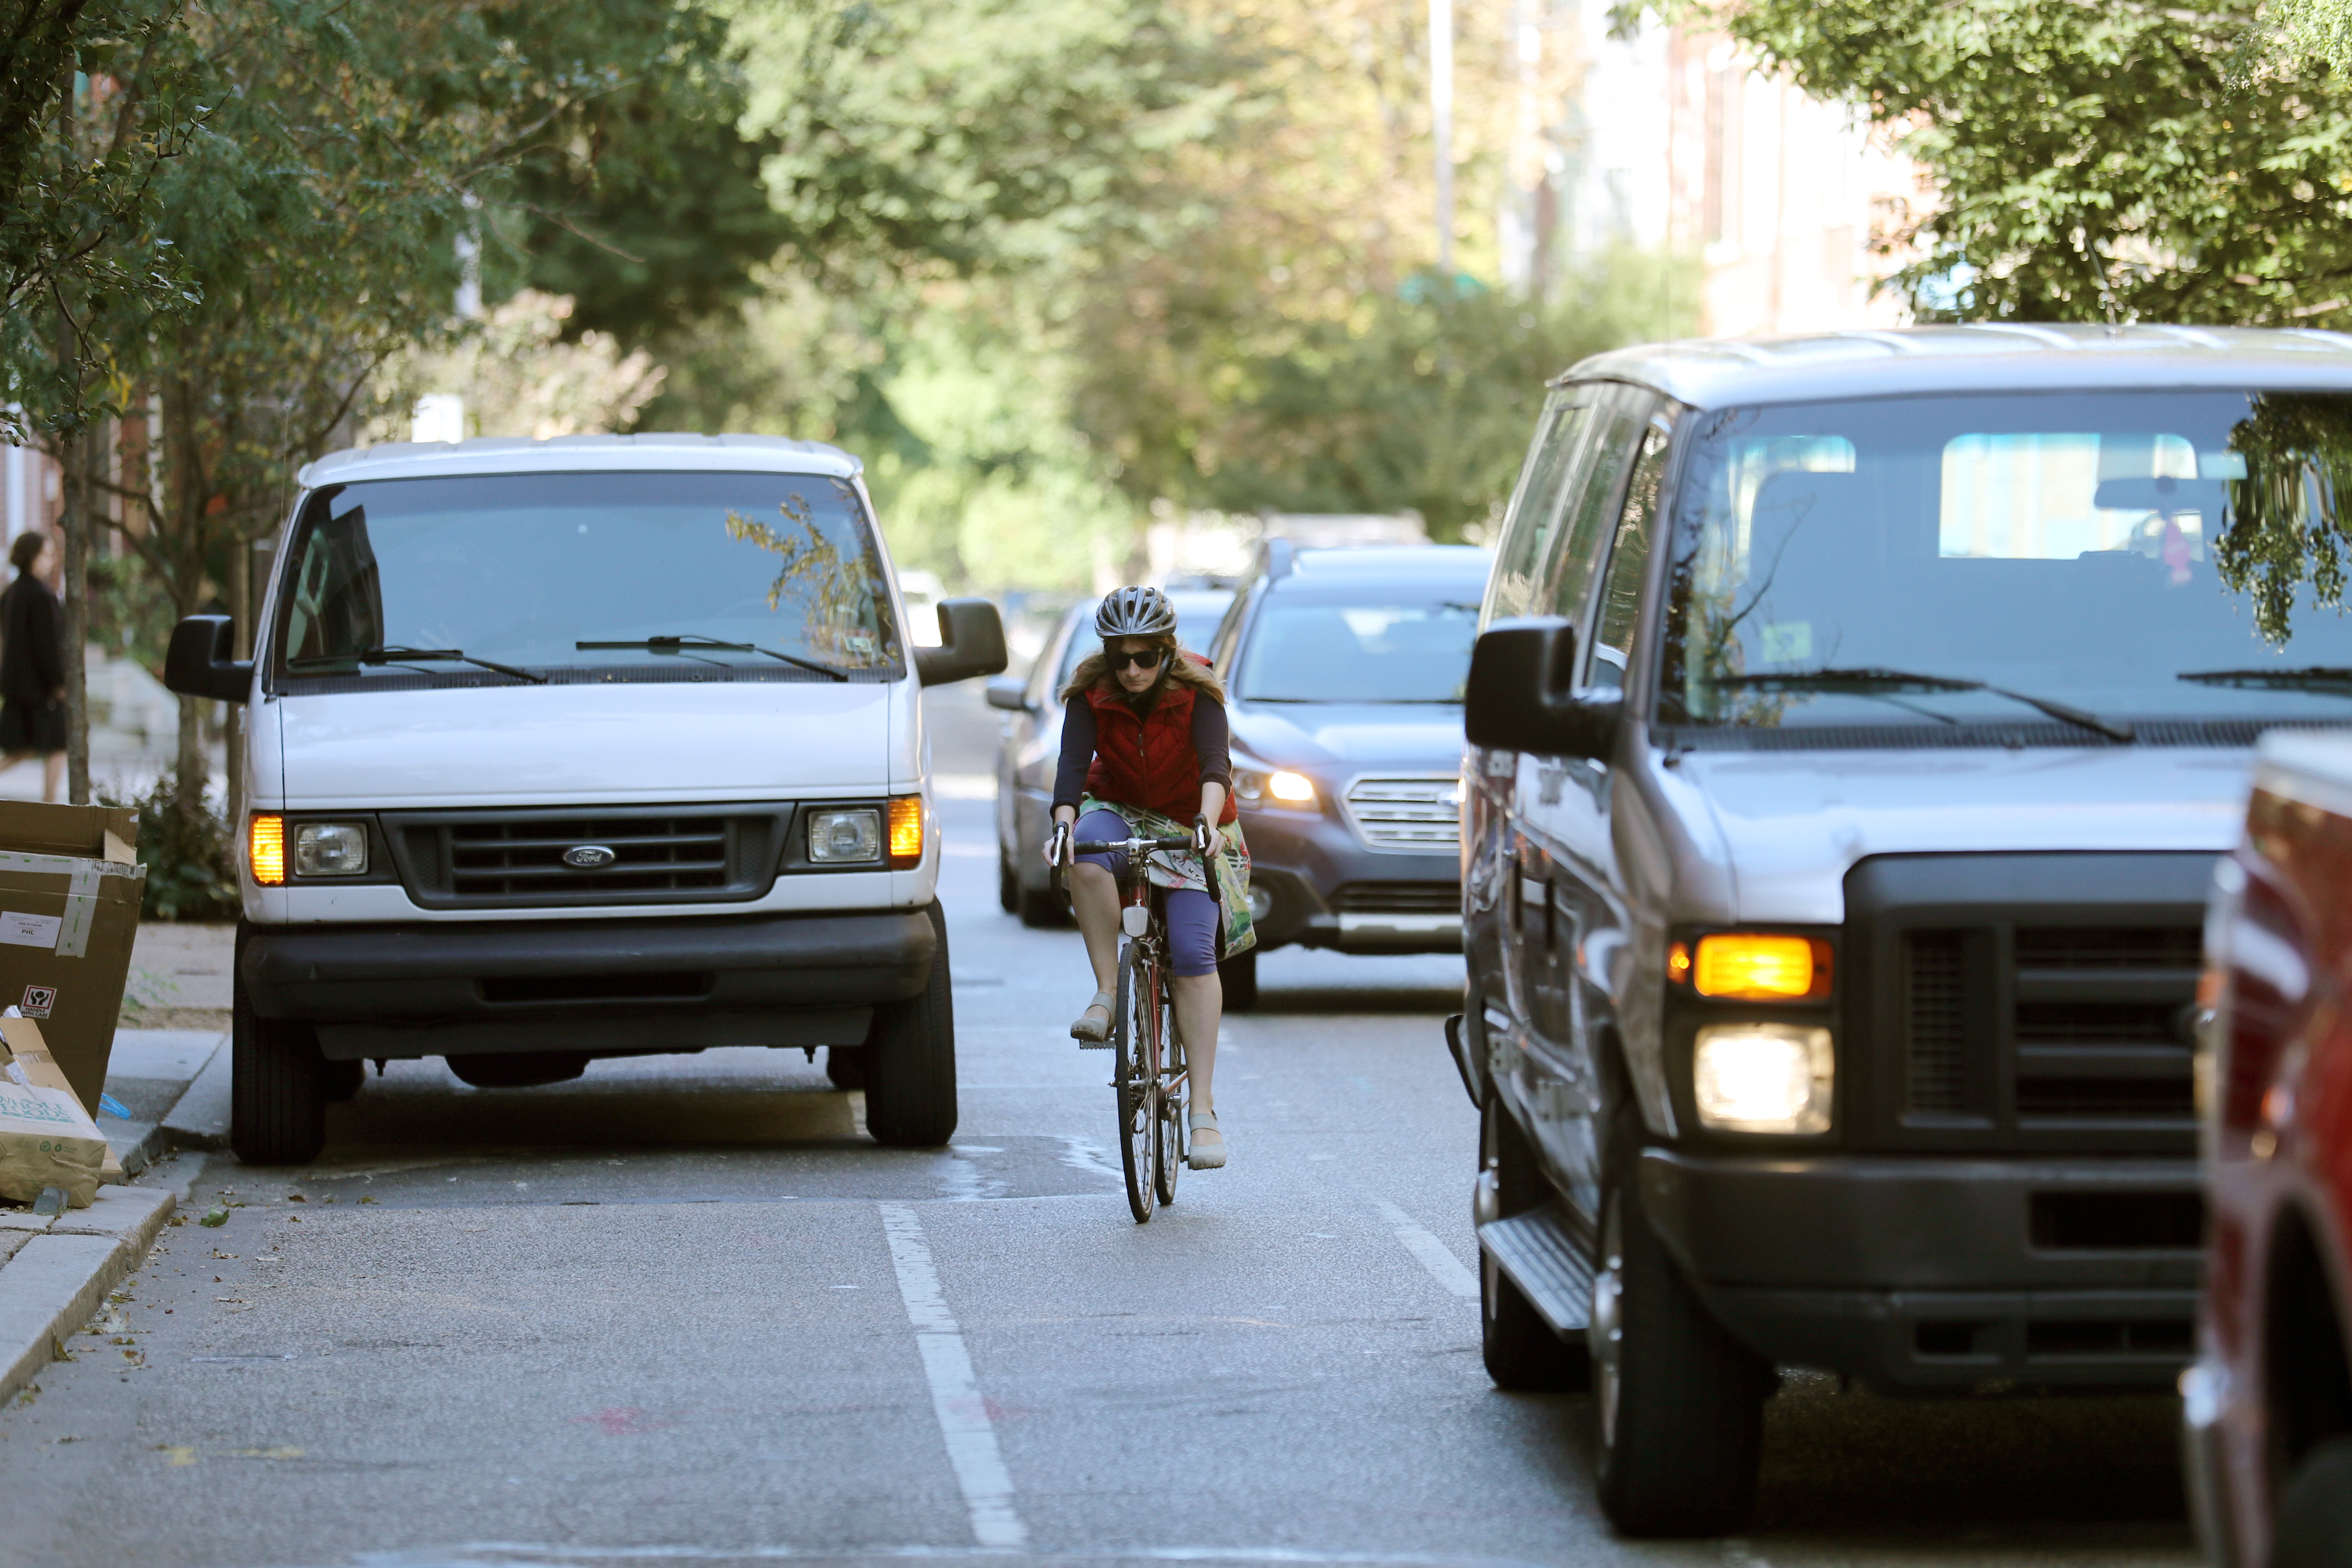 A bicyclist weaving into traffic to avoid a parked van in the bike lane on on Pine Street.. DAVID SWANSON / Staff Photographer